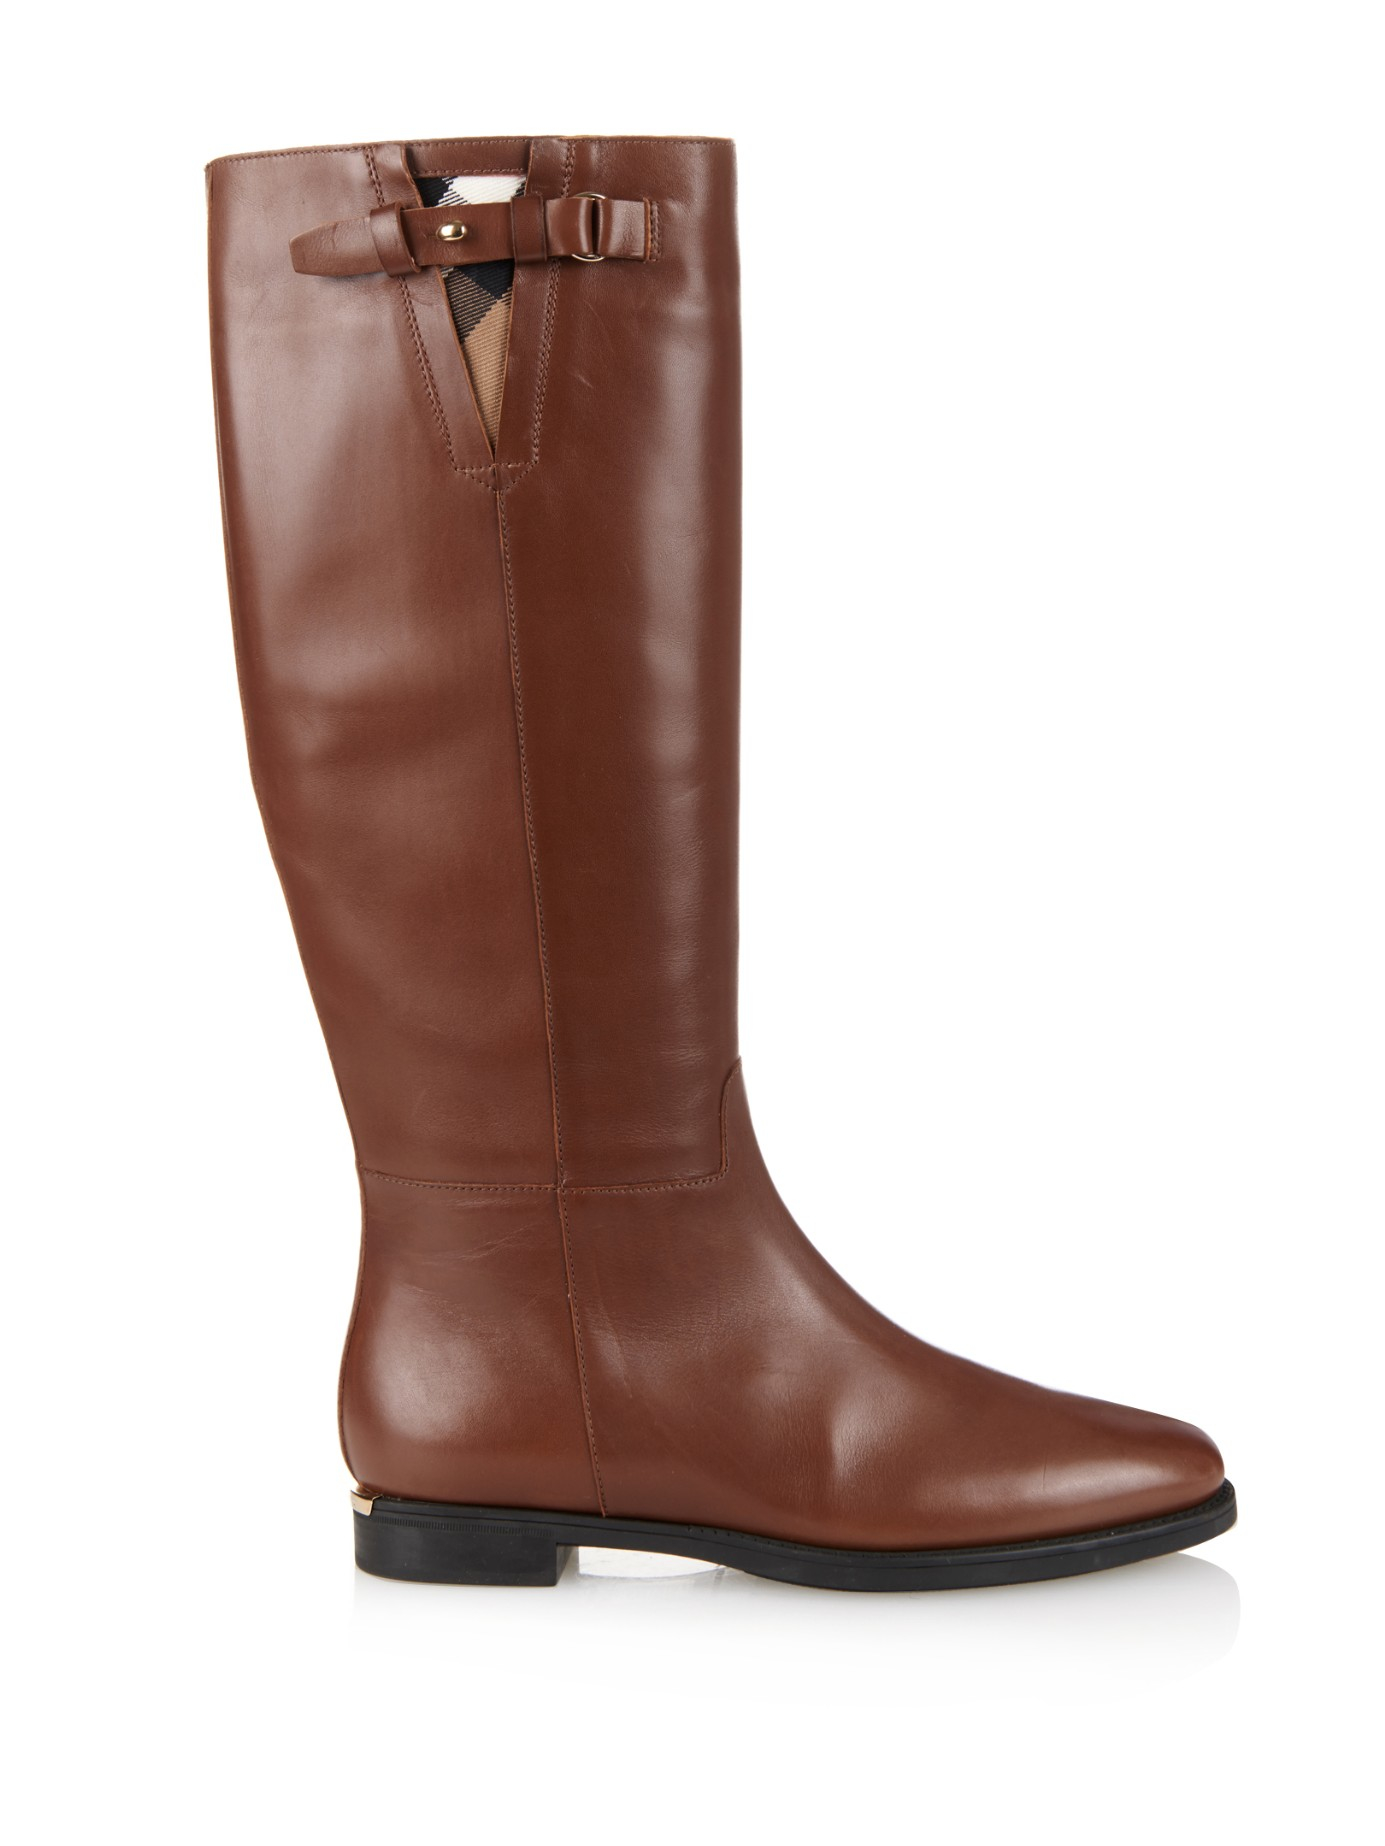 burberry house check trim leather boots in brown lyst